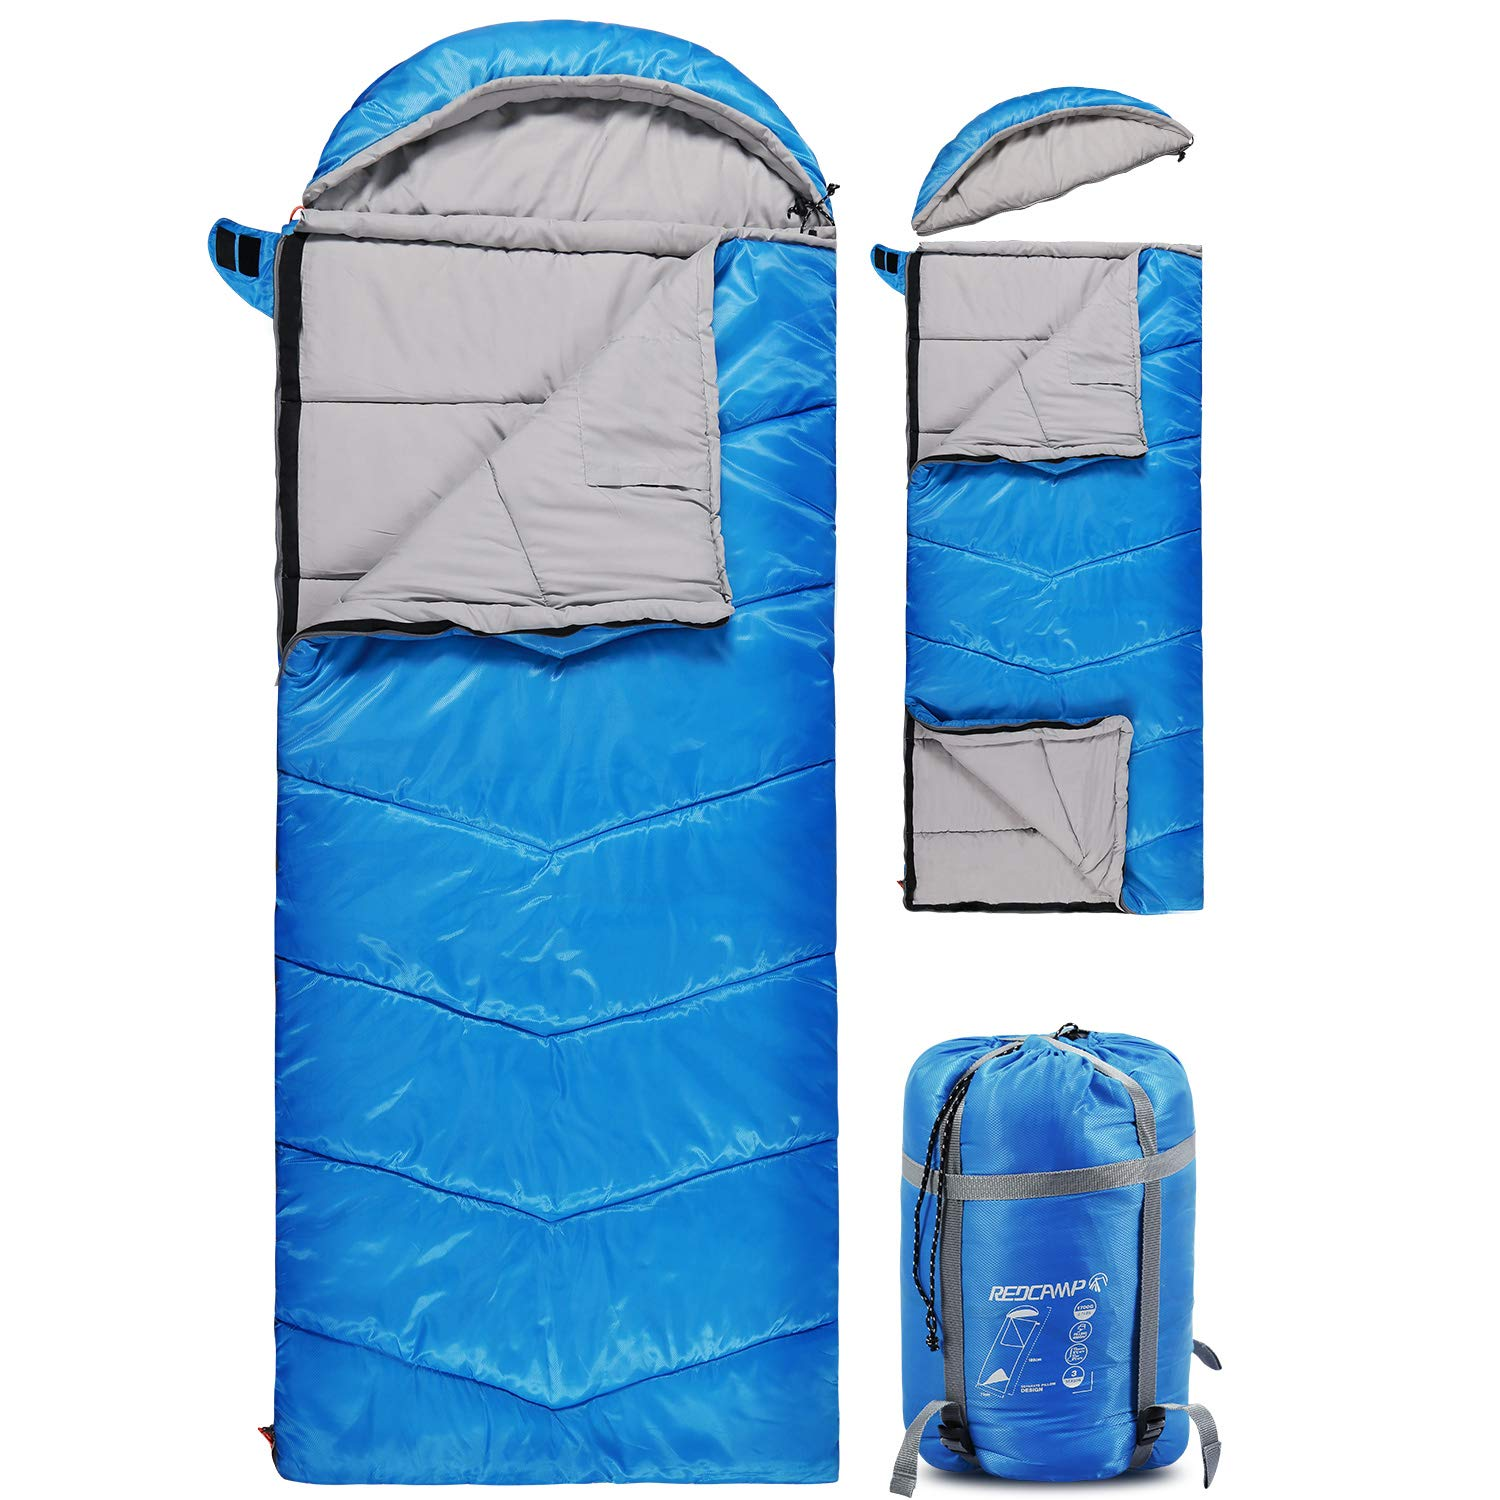 REDCAMP Kids Sleeping Bag for Camping with Detachable Hood, 50 Degree 3 Season Warm or Cold Weather Fit Boys, Girls & Teens (Blue with 3lbs Filling) by REDCAMP